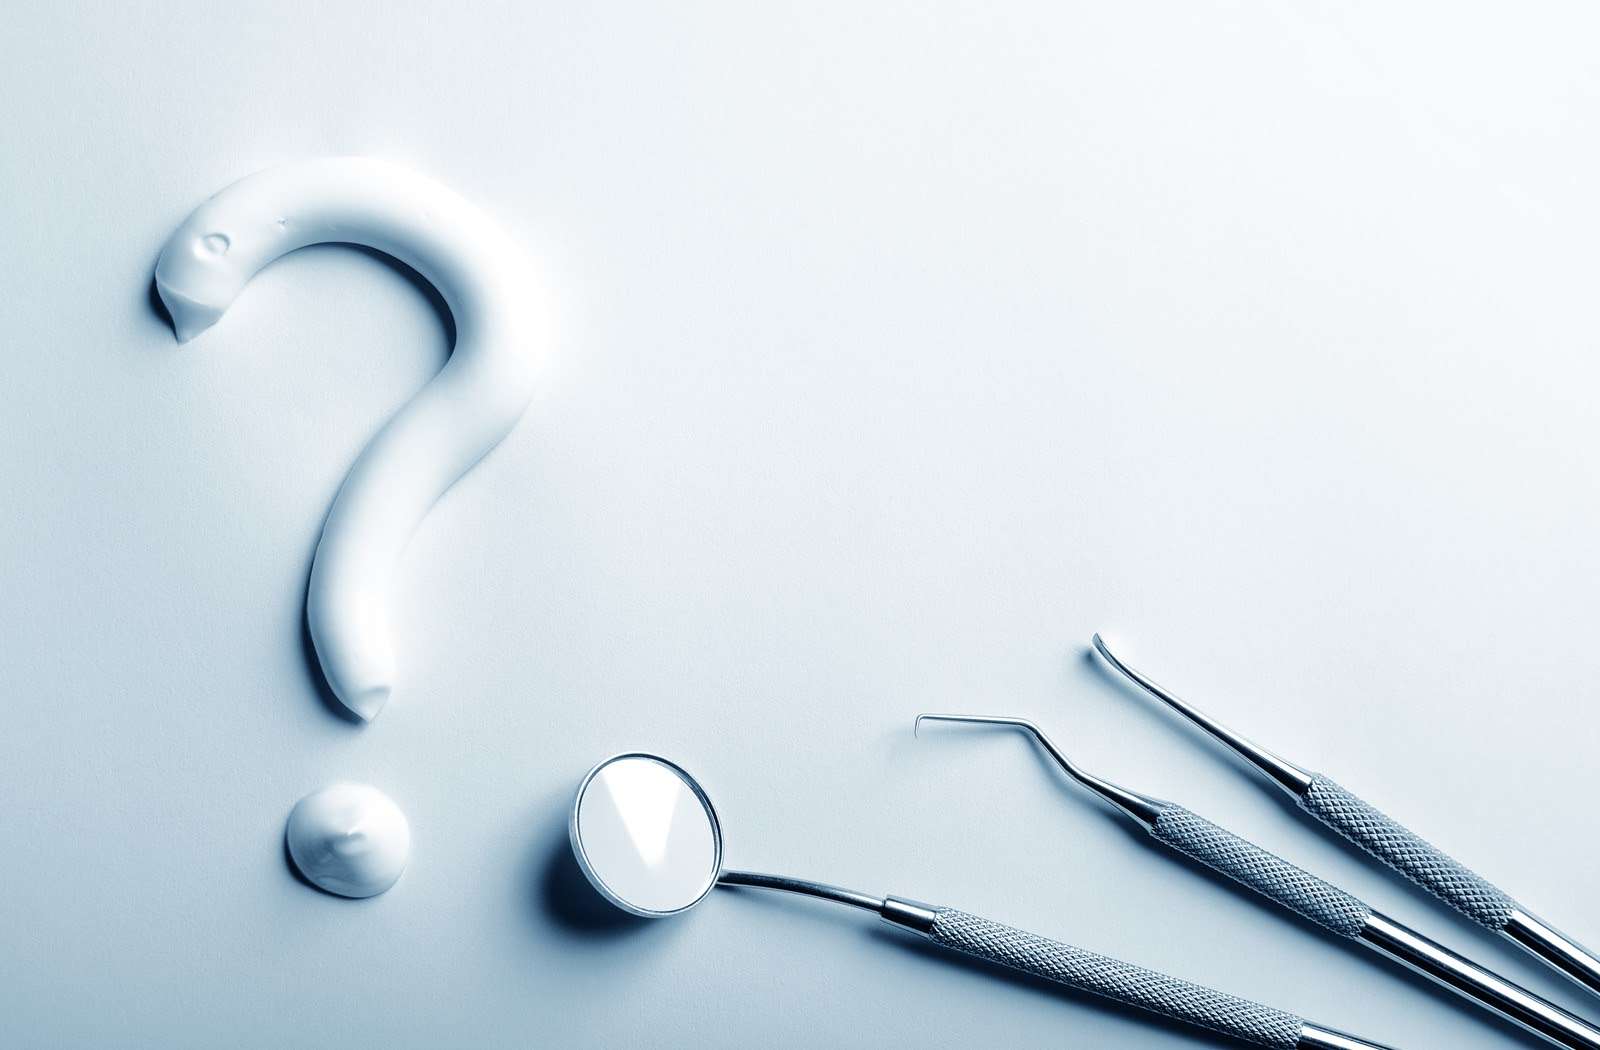 How Much Should a Dental Practice Spend on Marketing?